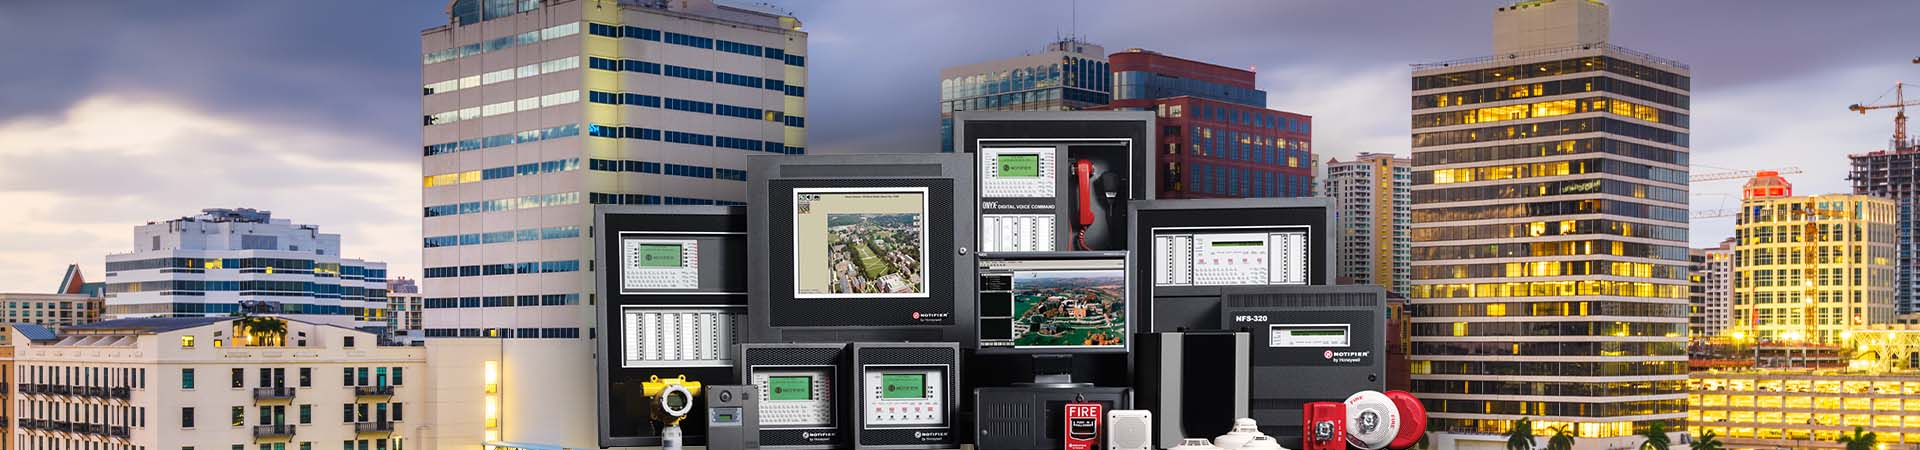 Commercial Alarm Systems in Fort Lauderdale, Hollywood, FL, Miami Beach